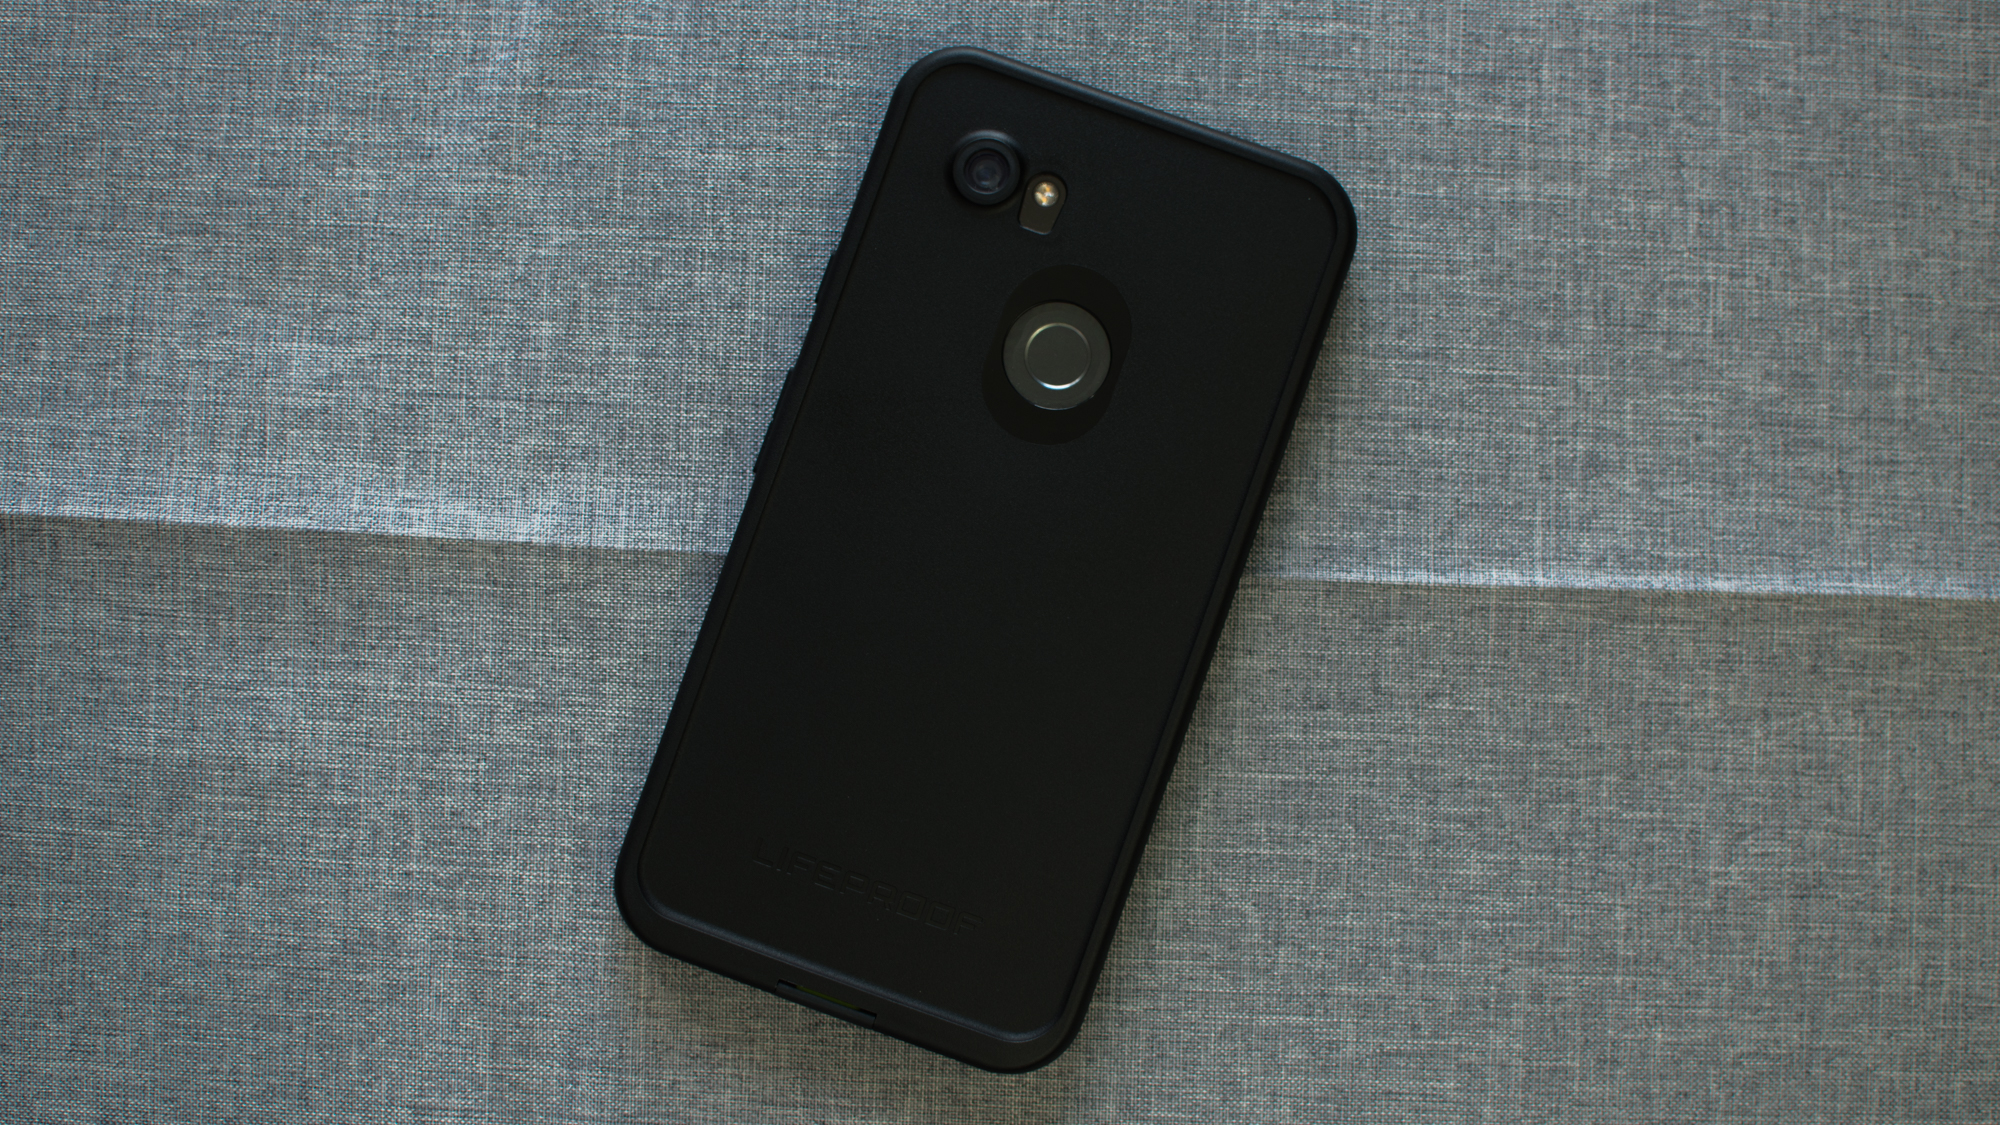 Review Lifeproofs Fre Case Adds Weatherproofing To The Pixel 2